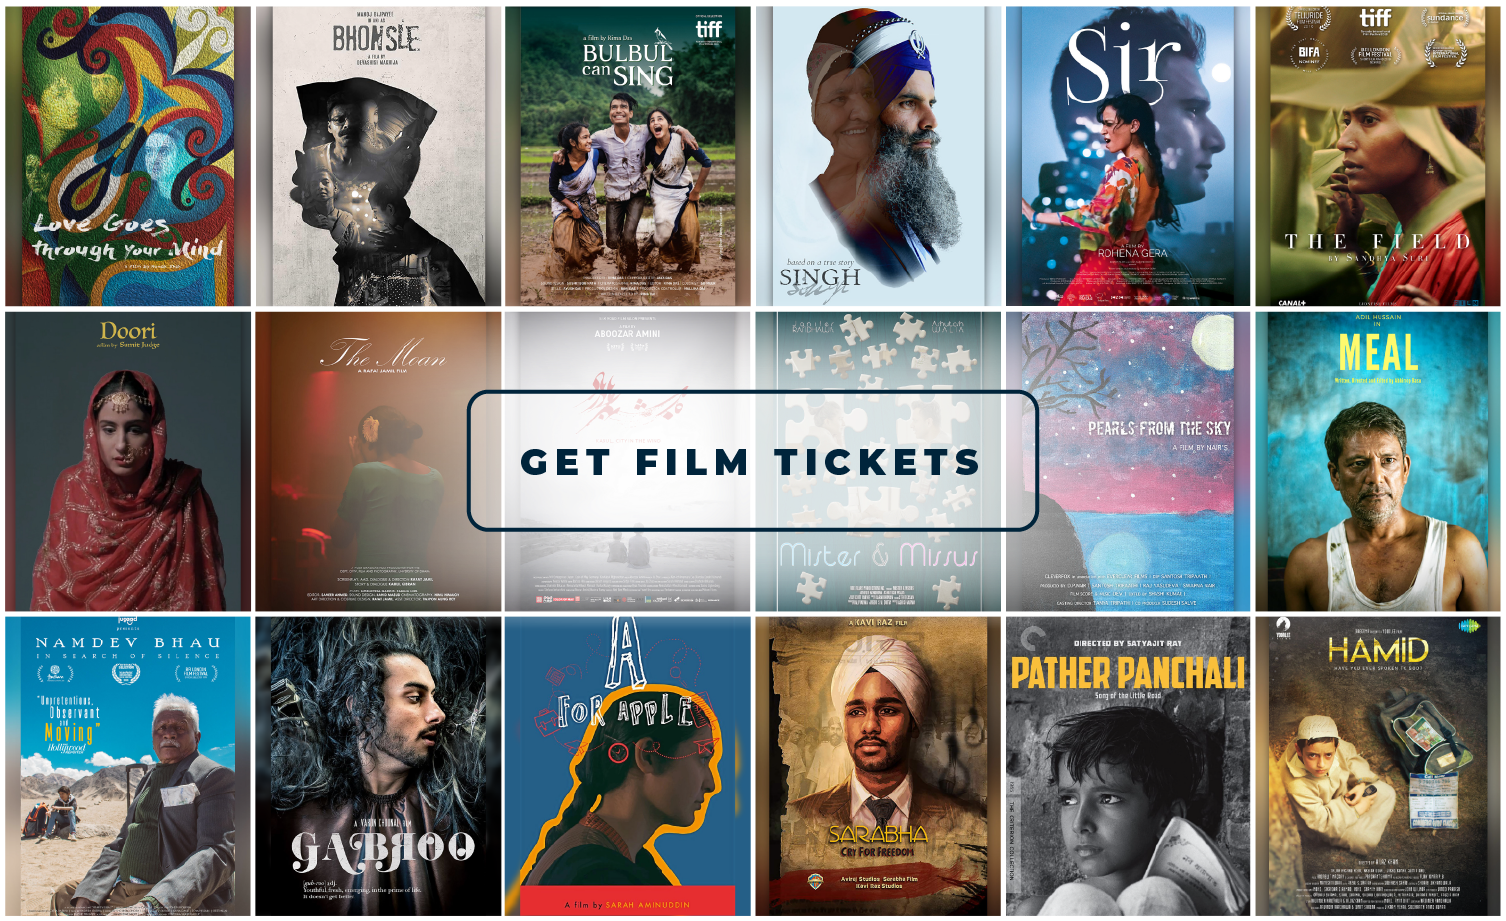 IFFSA Toronto – THE LARGEST SOUTH ASIAN FILM FESTIVAL IN